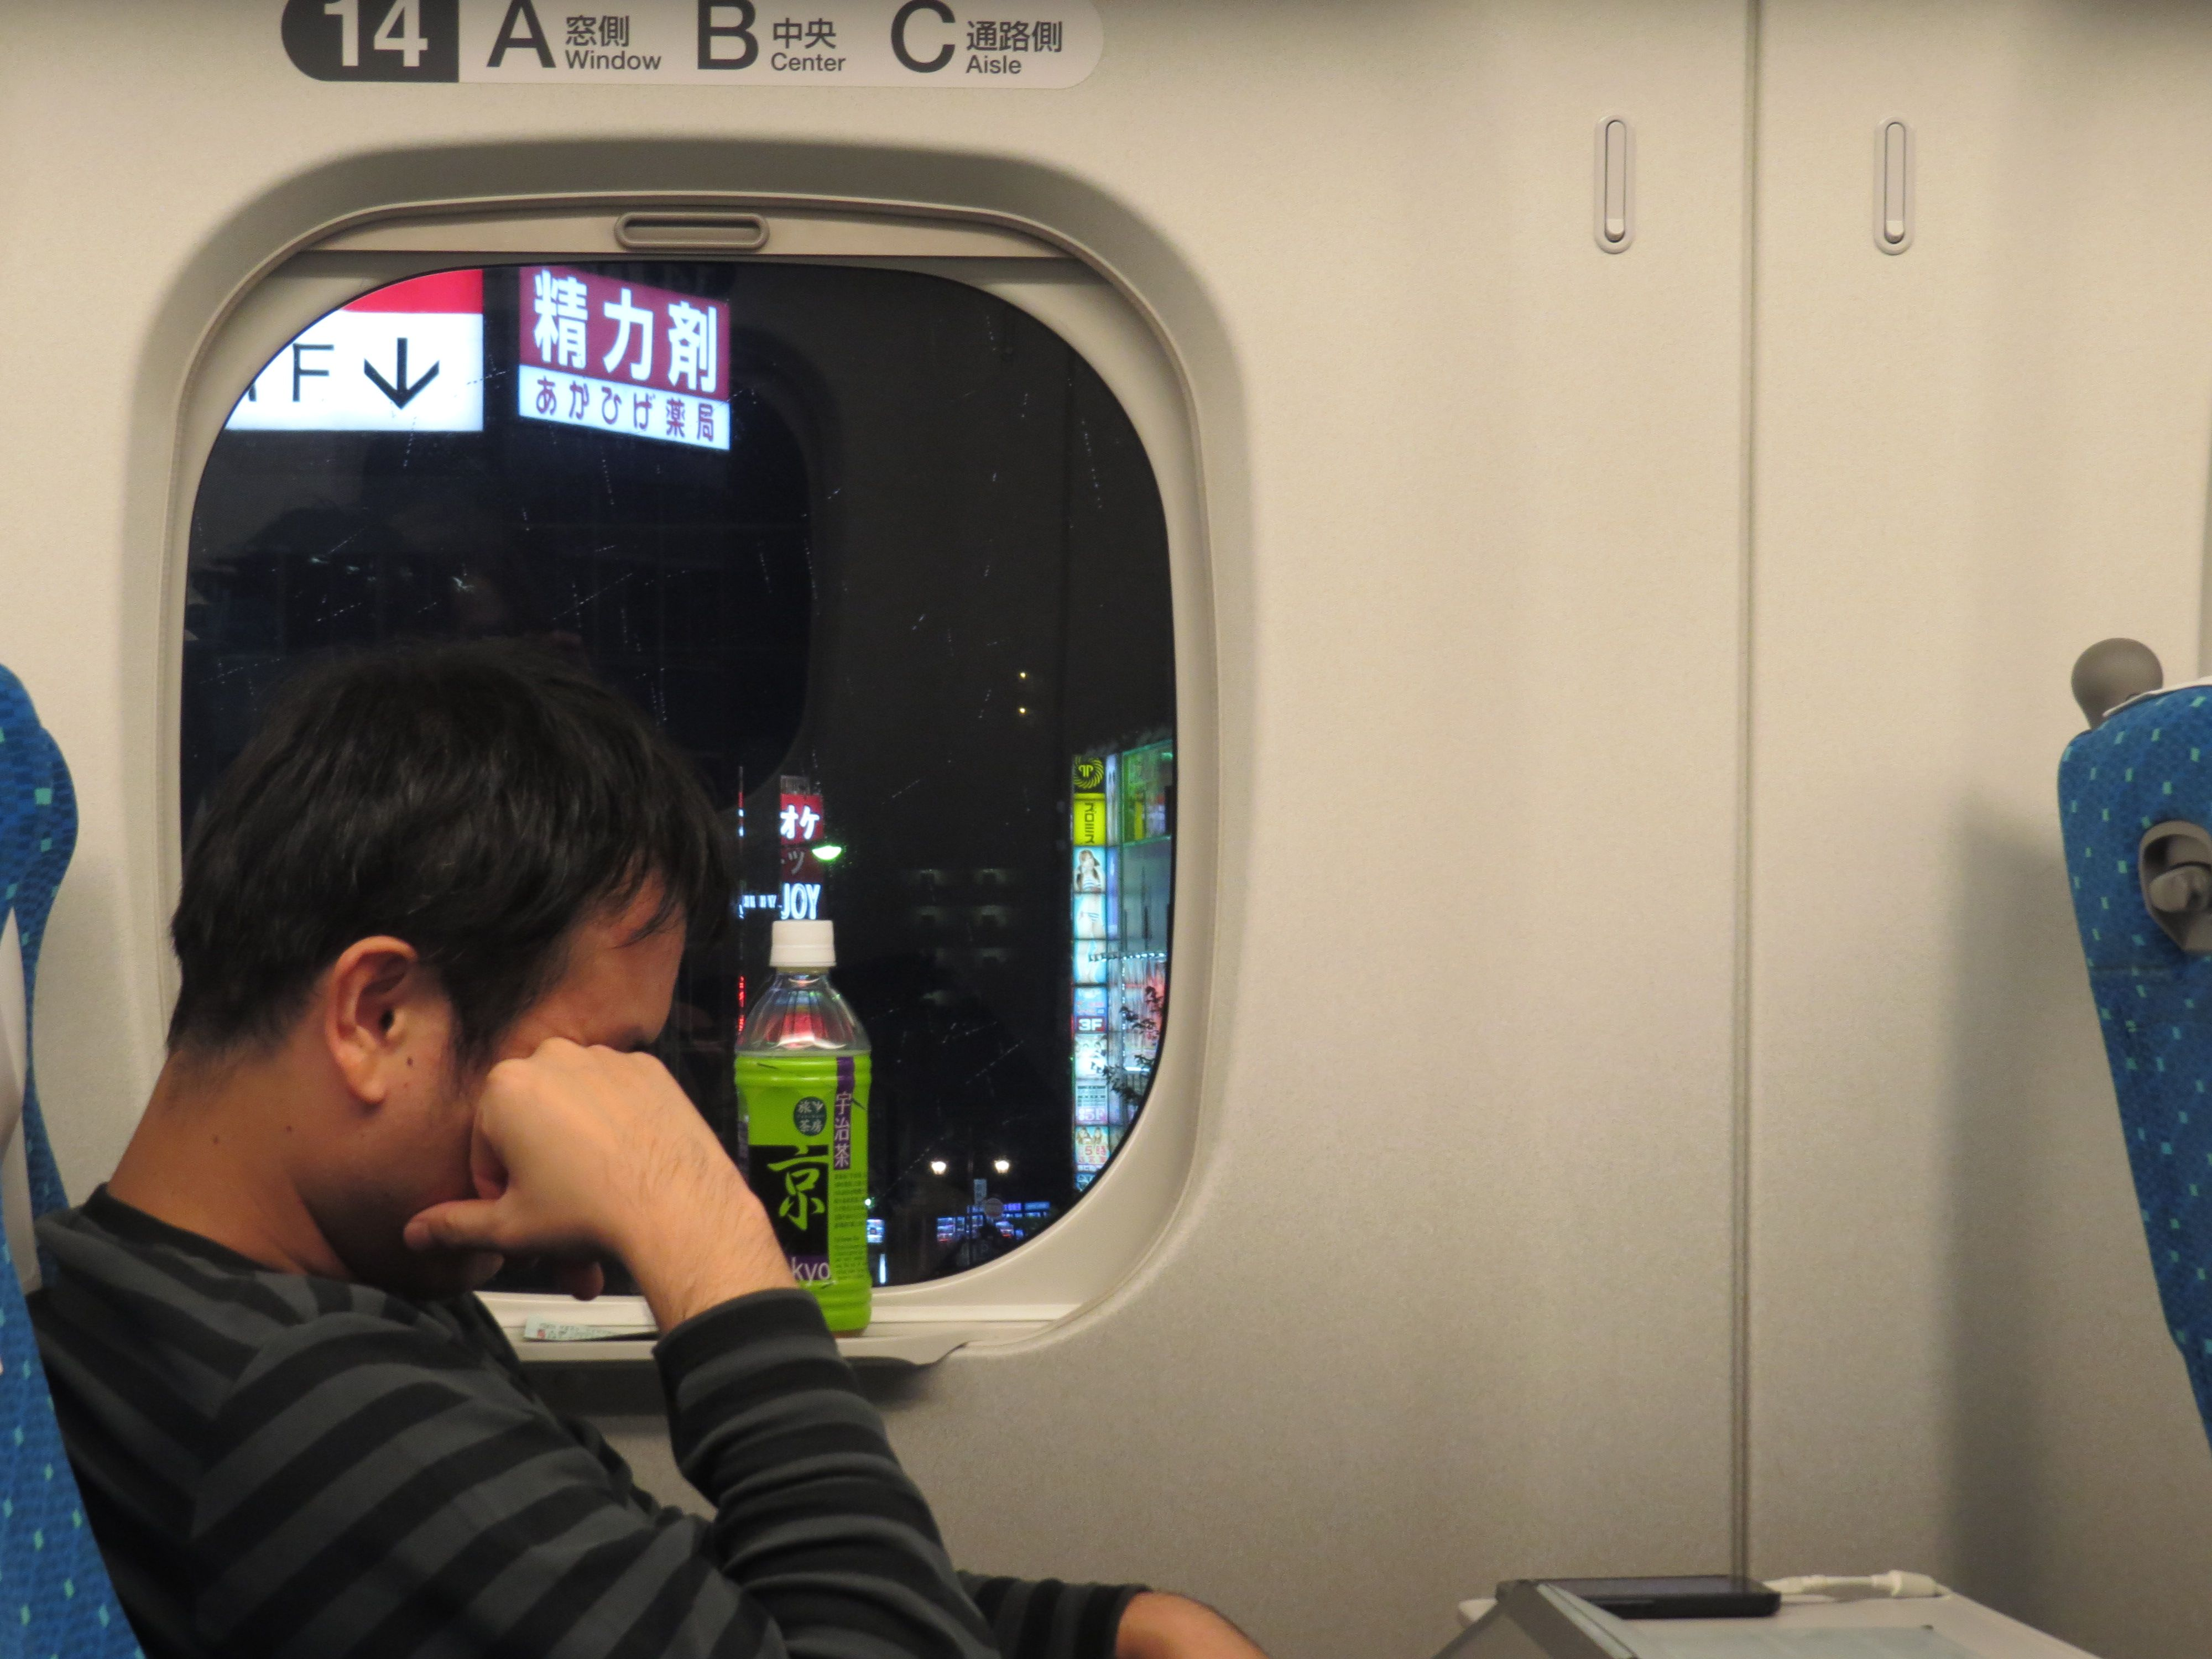 train ride home. lol. look @ the arrow pointing down @ him.